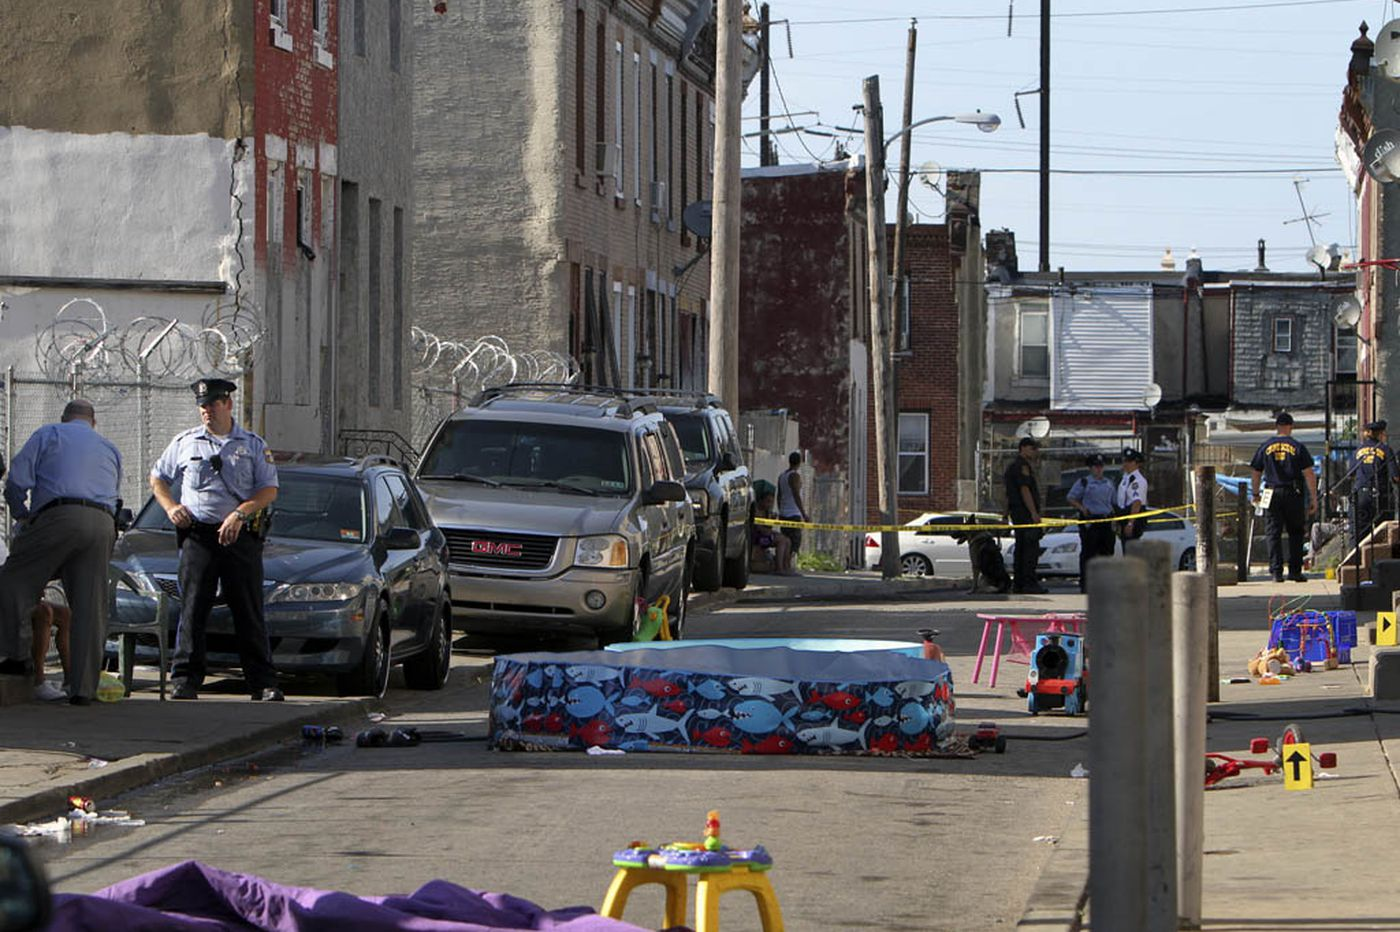 Shootings and bloodshed on Father's Day in North Philly